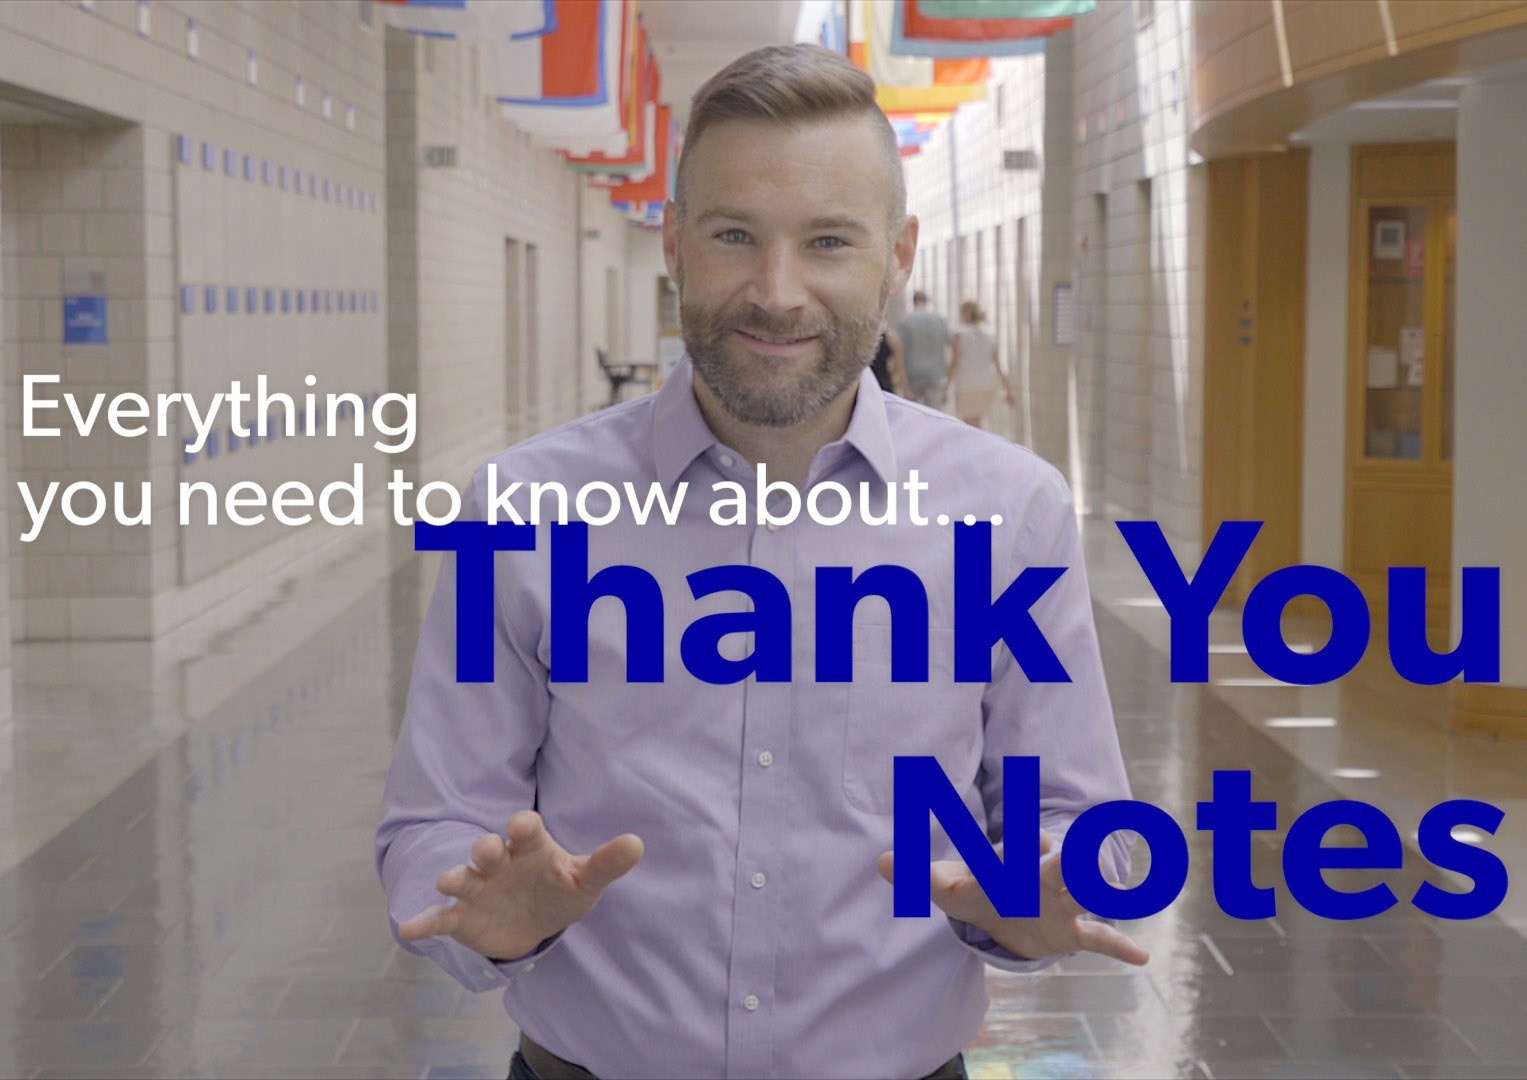 Steve Dalton, Program Director of Daytime Career Services at Duke's Fuqua School of Business, tells you everything you need to know about thank you notes.